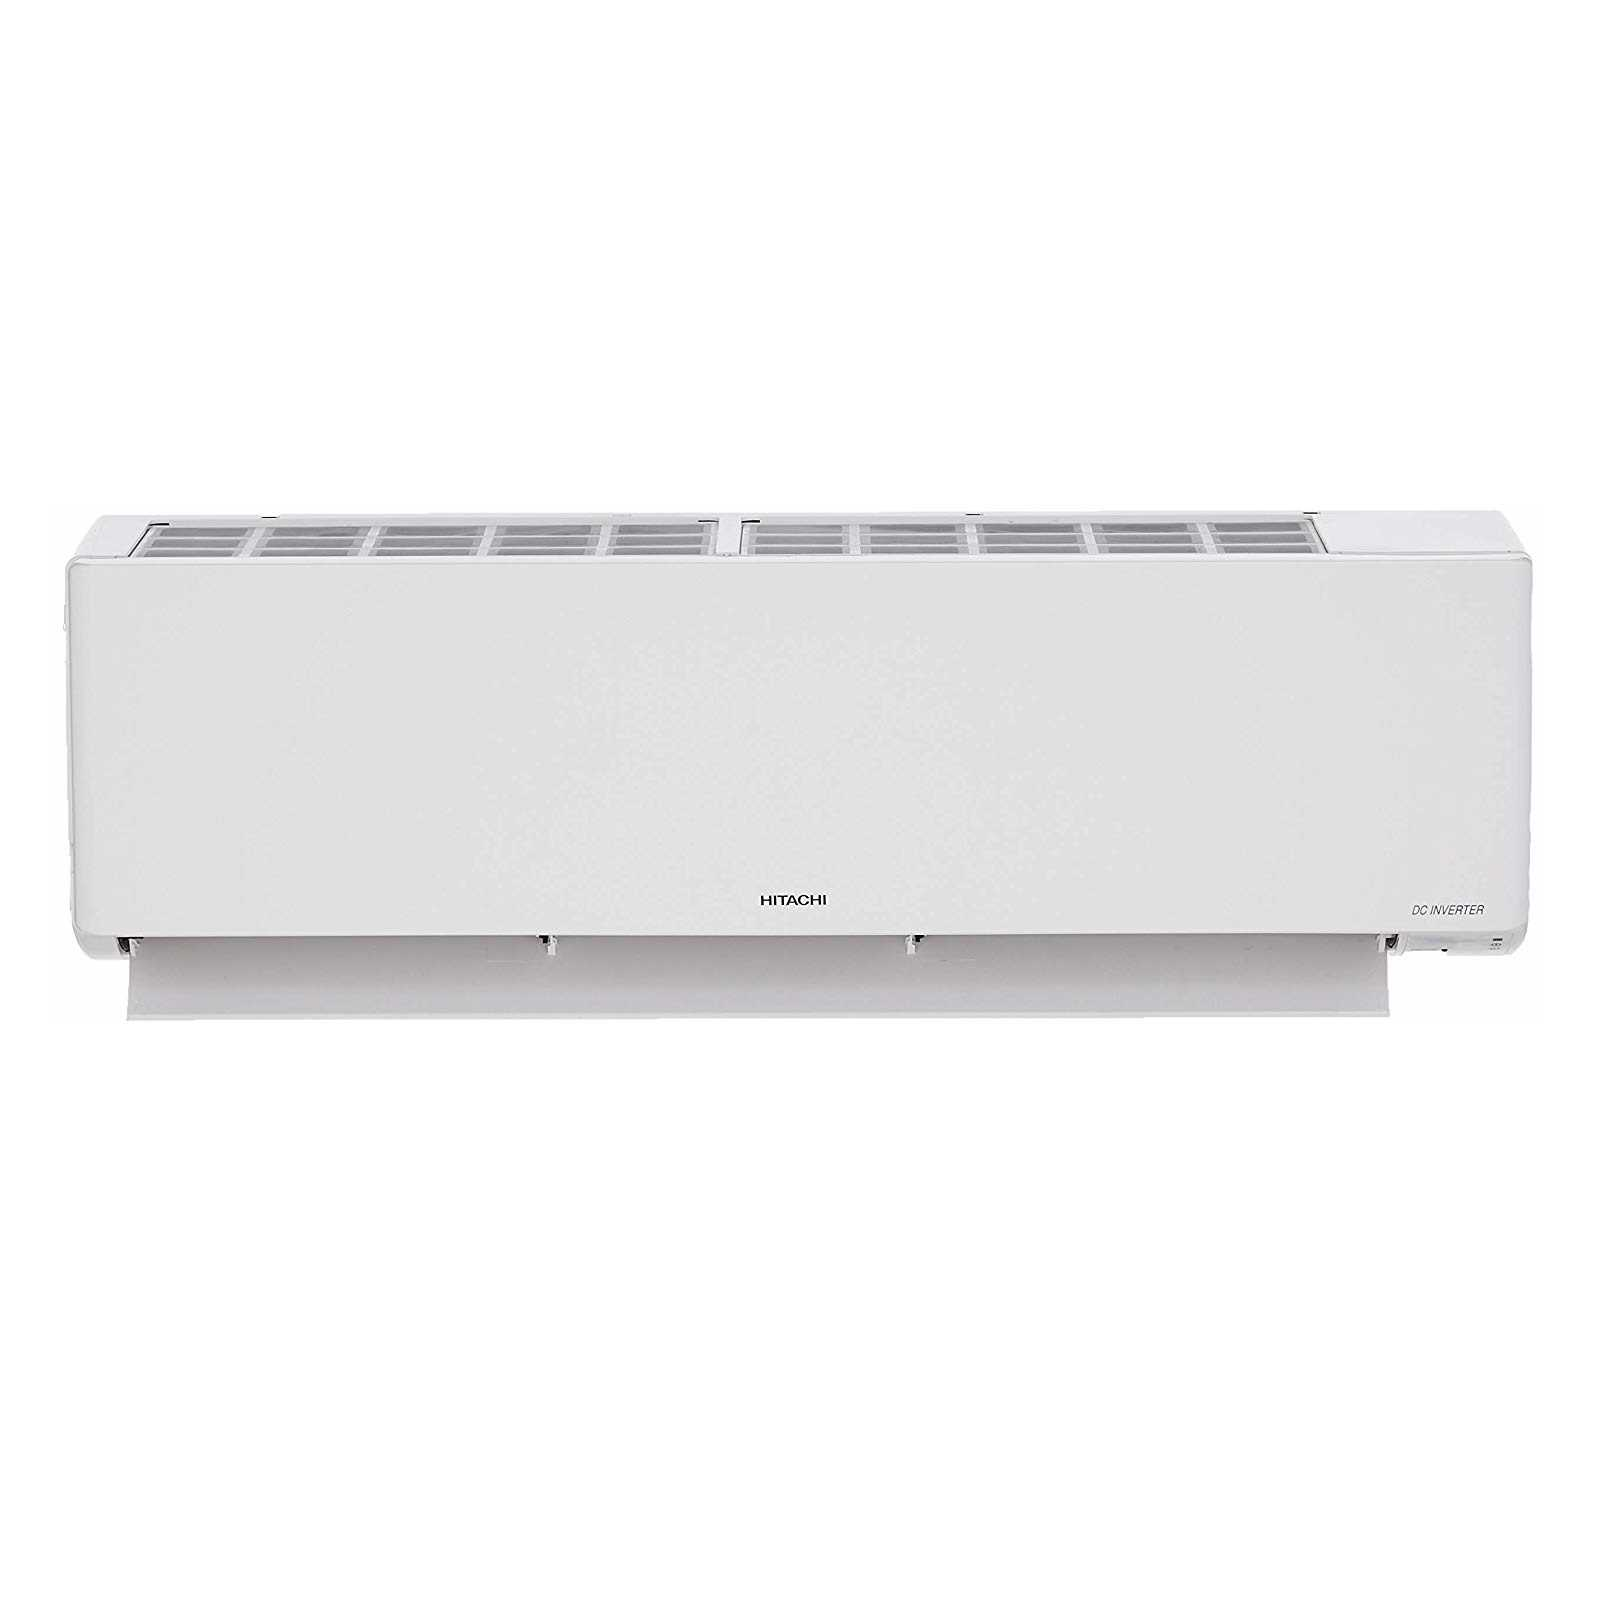 Hitachi Sugoi 3100S RSD317HCEA 1.5 Ton 3 Star Inverter Split AC